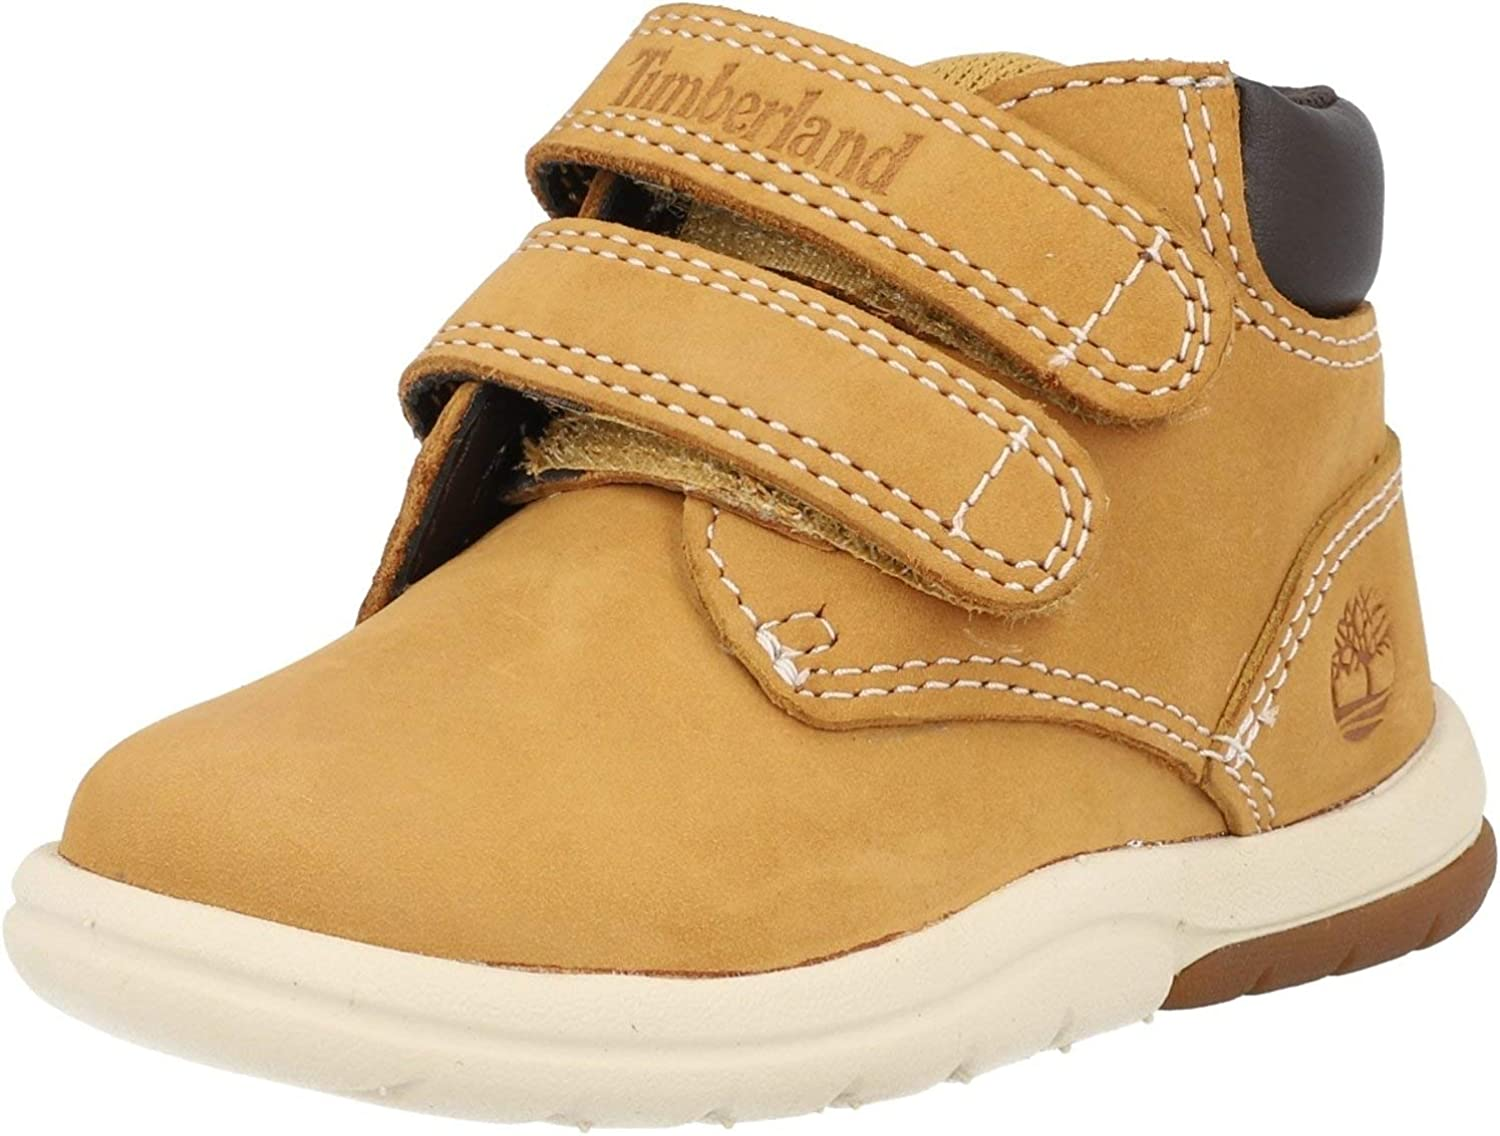 mostrar evaporación Aparte  Timberland Unisex Babies' Toddle Tracks Hook and Loop (Toddler) Ankle Boots:  Amazon.co.uk: Shoes & Bags